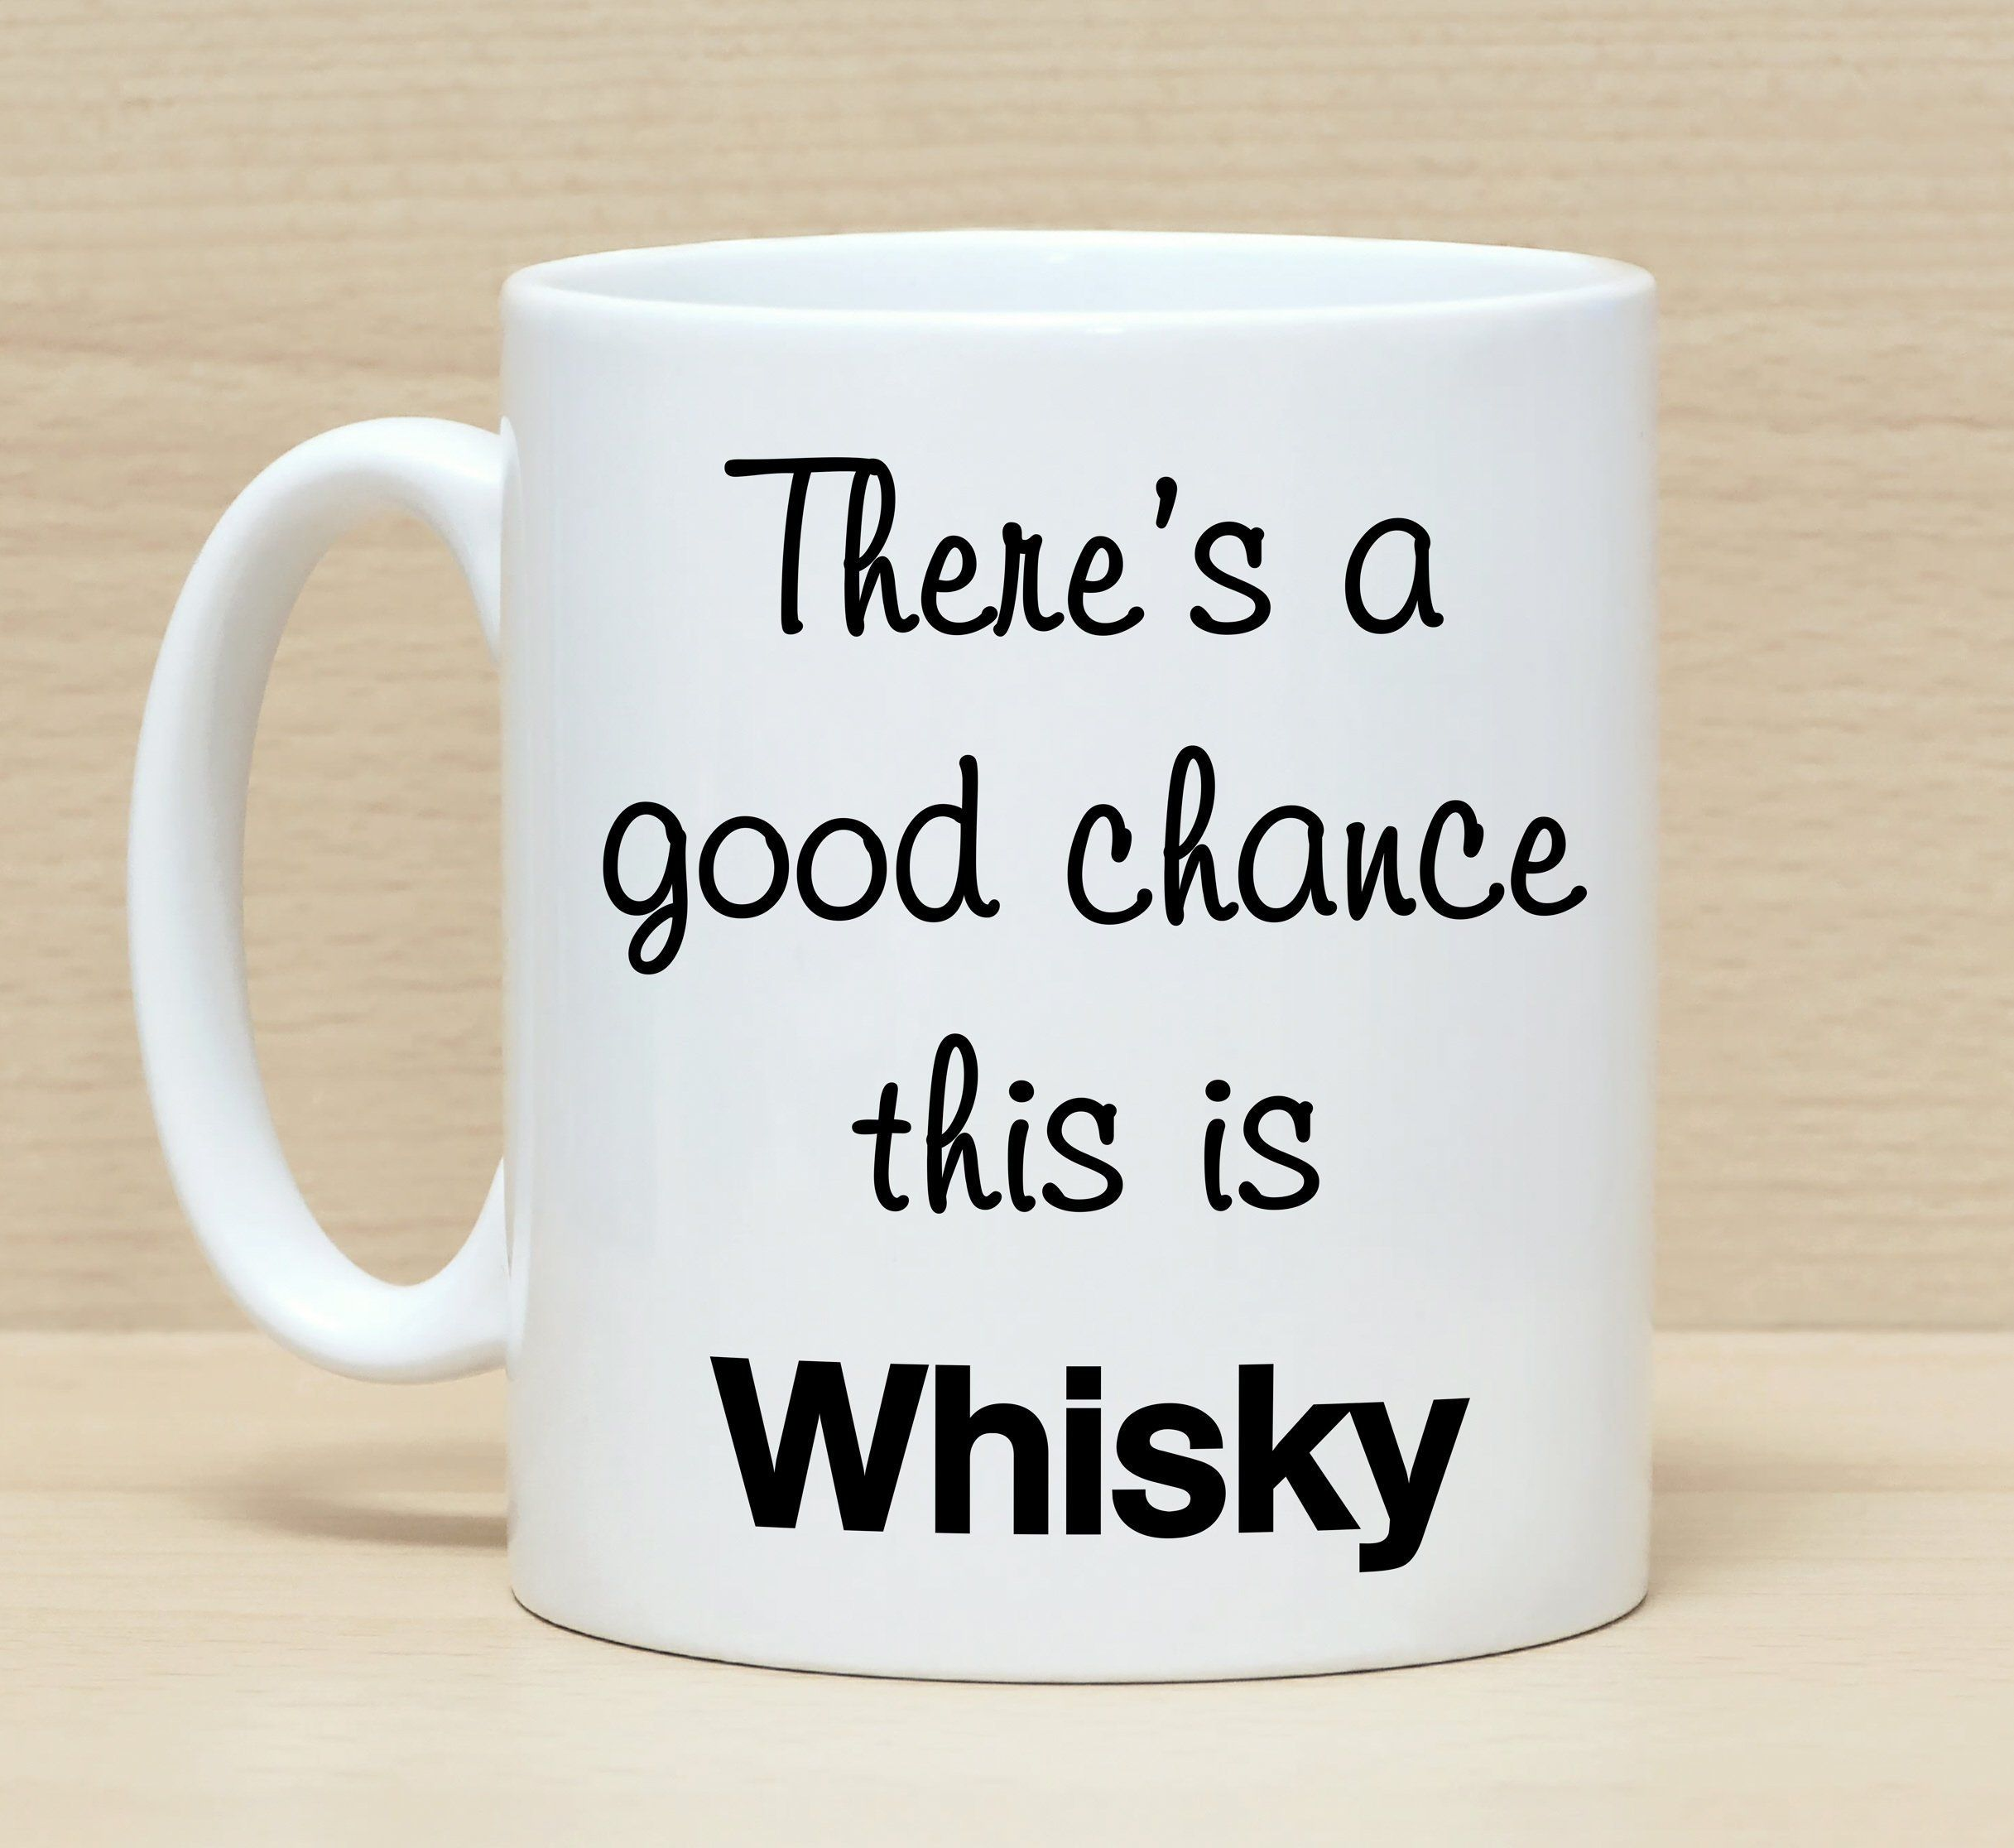 Funny coffee mugs, Mug with sayings, Funny mugs, Whisky